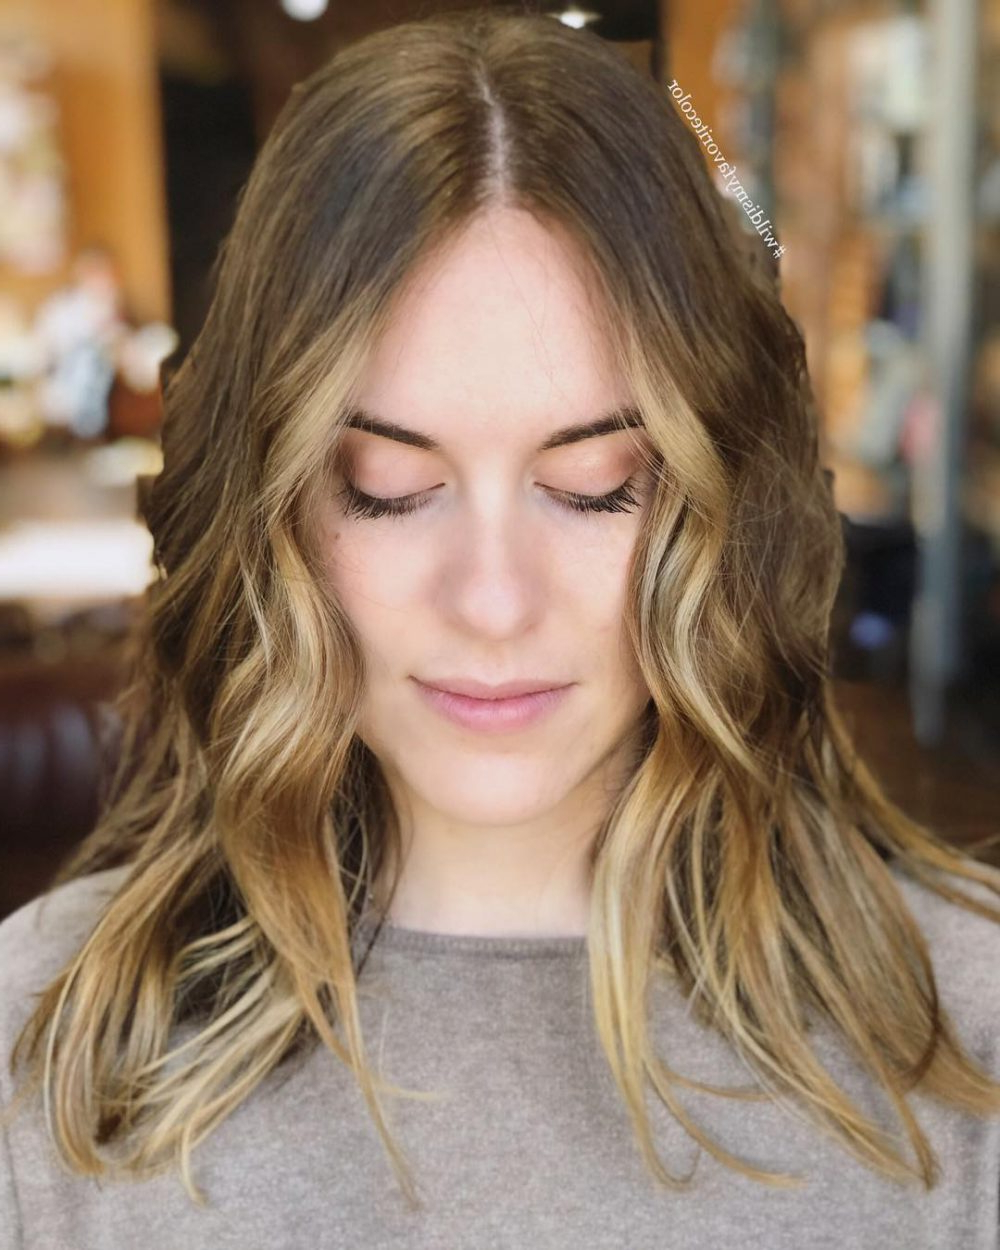 17 Flattering Medium Hairstyles For Round Faces In 2019 With Widely Used Round Face Medium Hairstyles (Gallery 1 of 20)